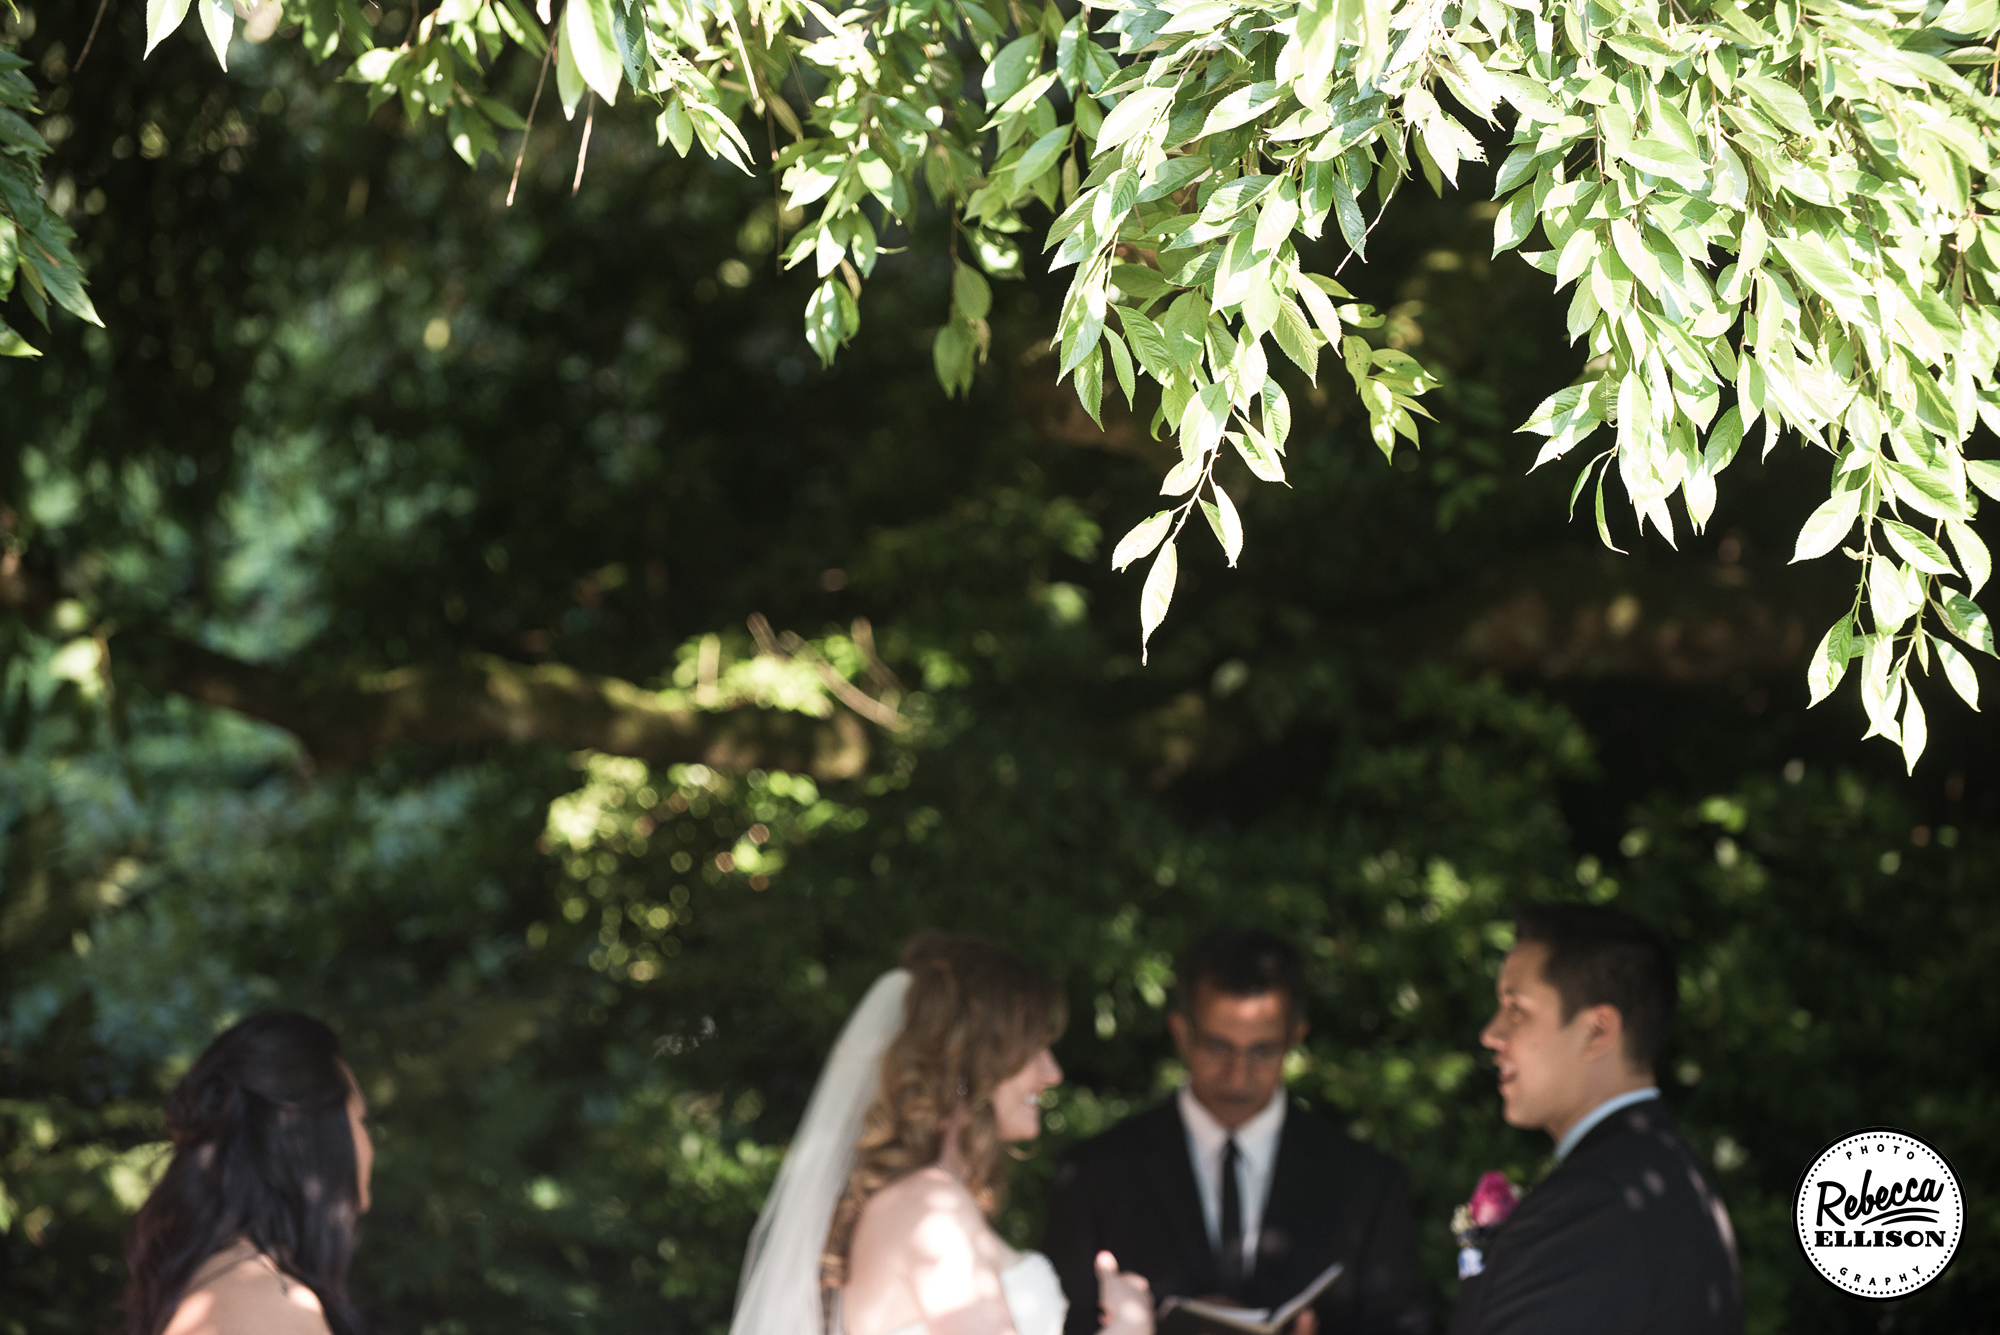 Bride and groom during their wedding ceremony under the trees at their Parsons Garden wedding photographed by Seattle wedding photographer Rebecca Ellison